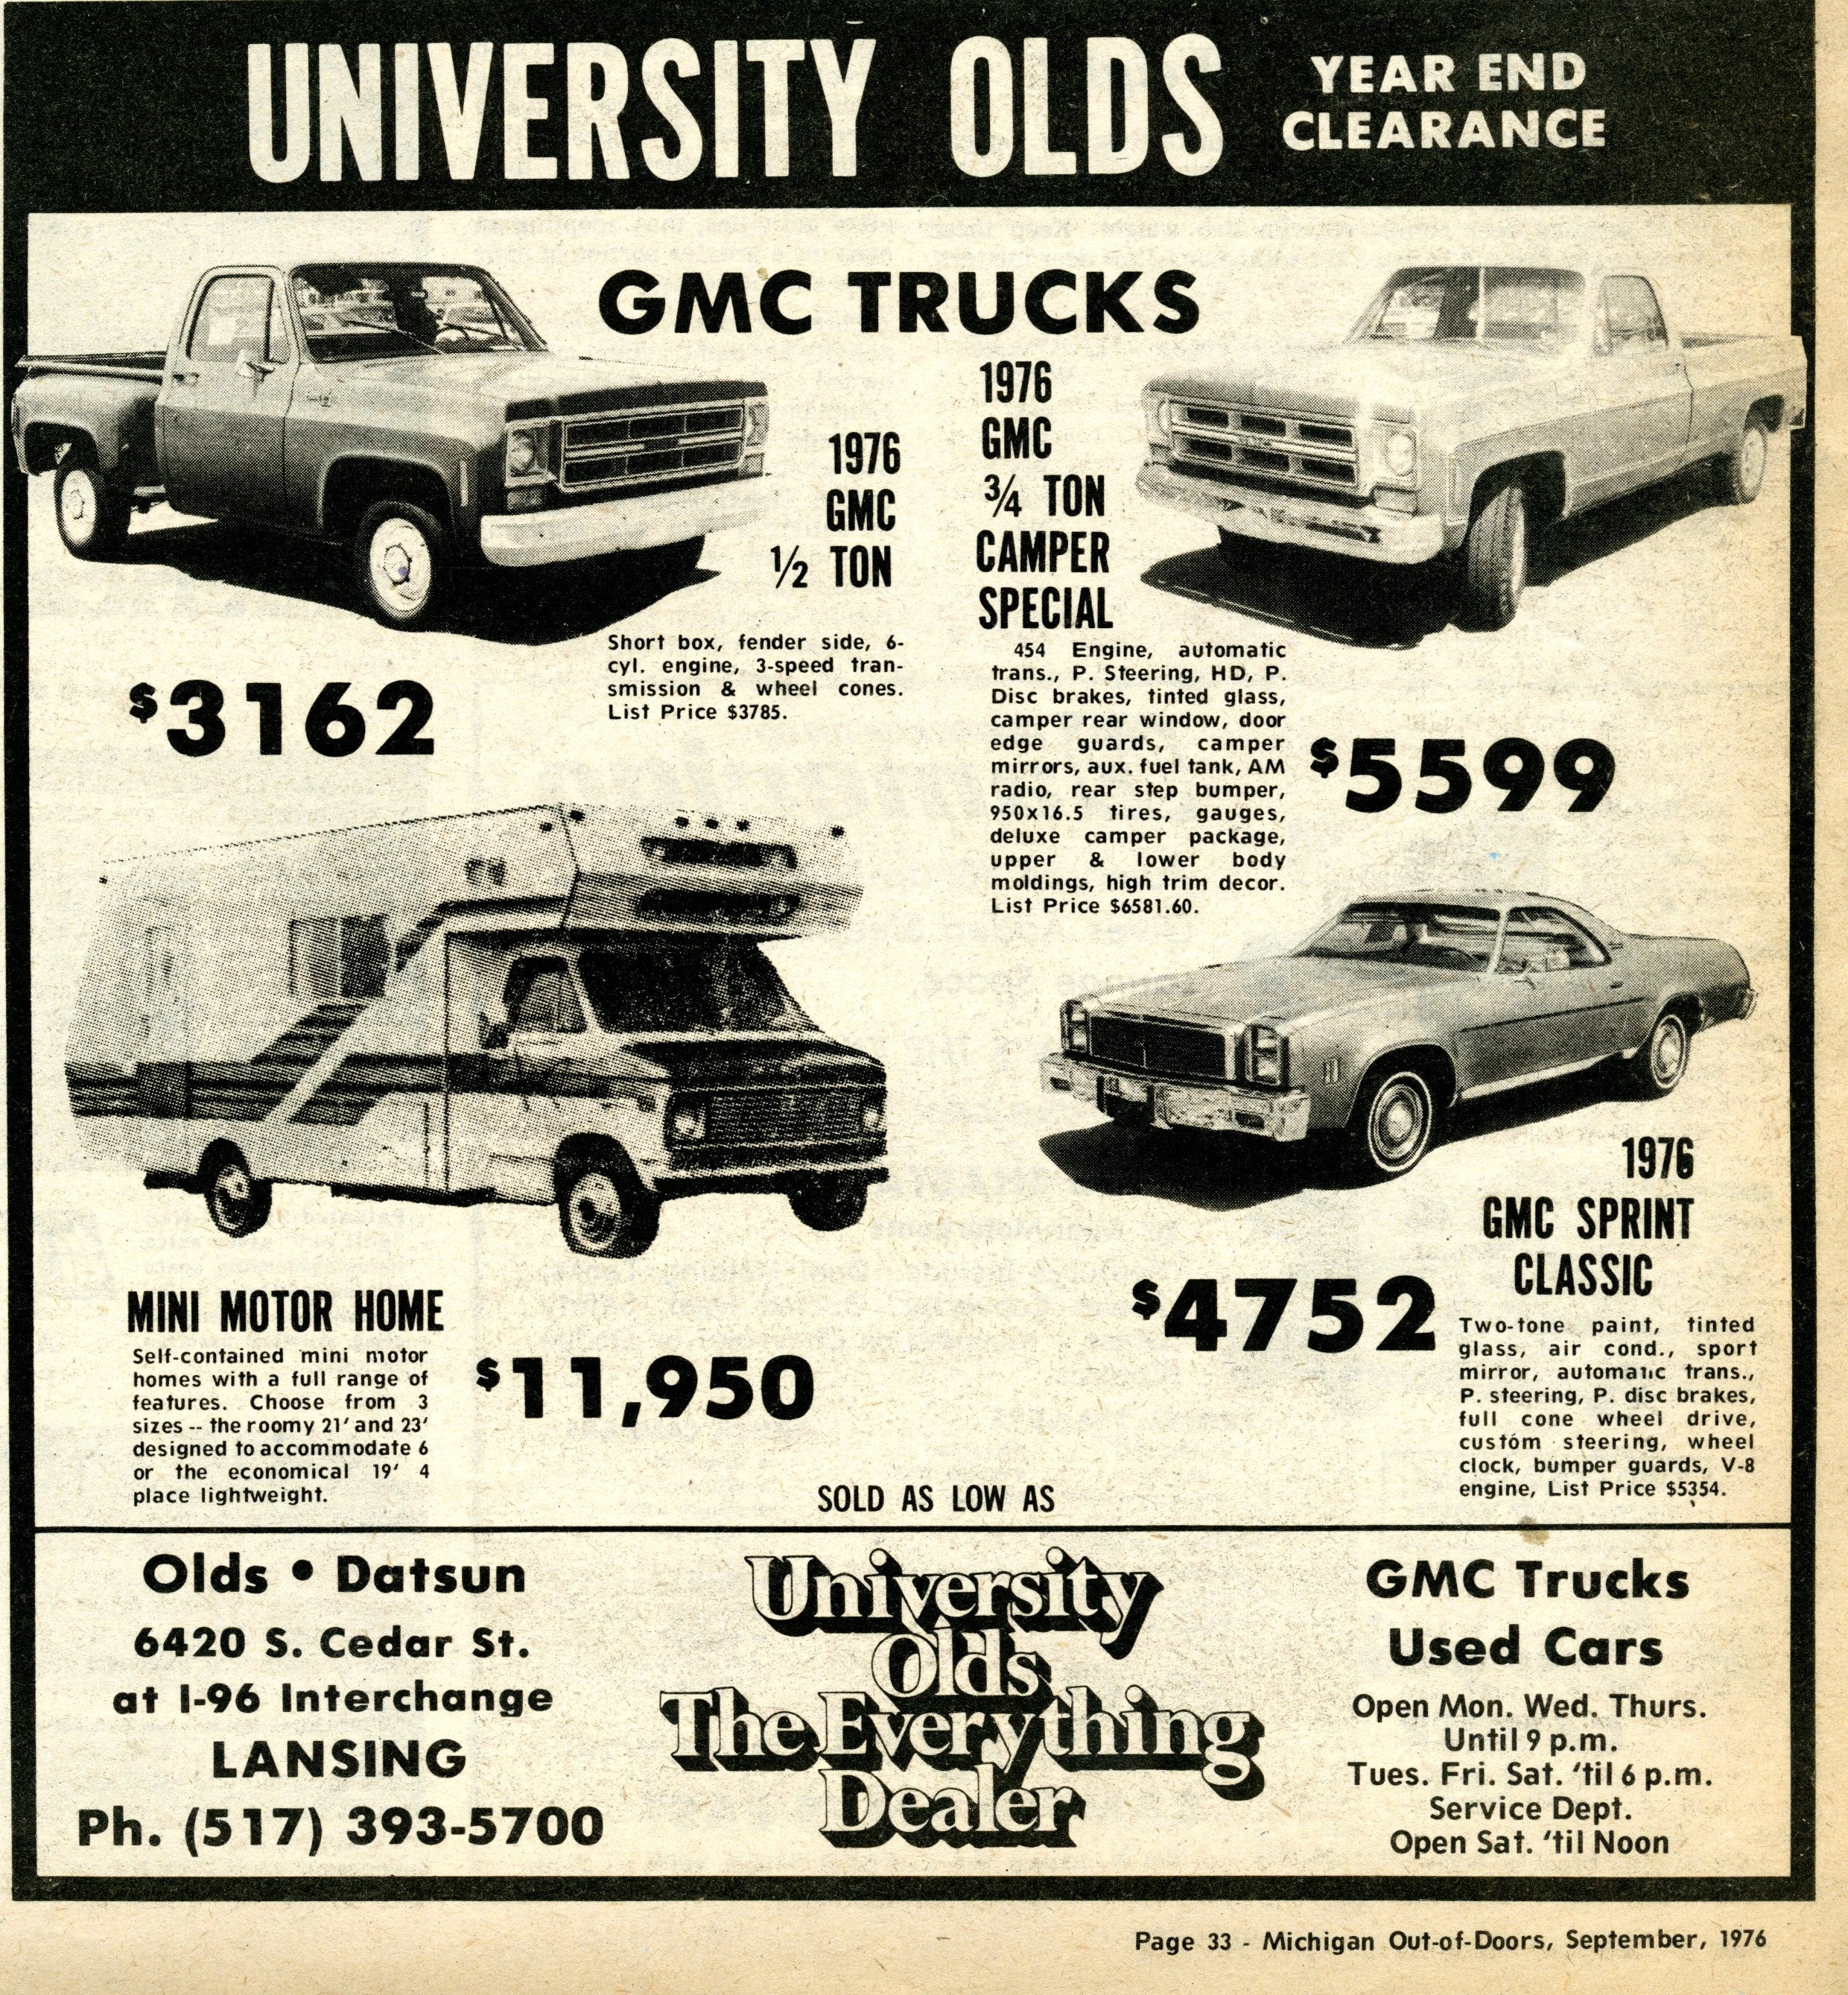 Dedicated To 73 87 Full Size Gm Trucks Suburbans And 1976 Chevy 4x4 3 4 Ton American Coach Corporation Built These There Were Three Different Levels Of Amarillo You Could Choose From Check Out The Armarillo Page For